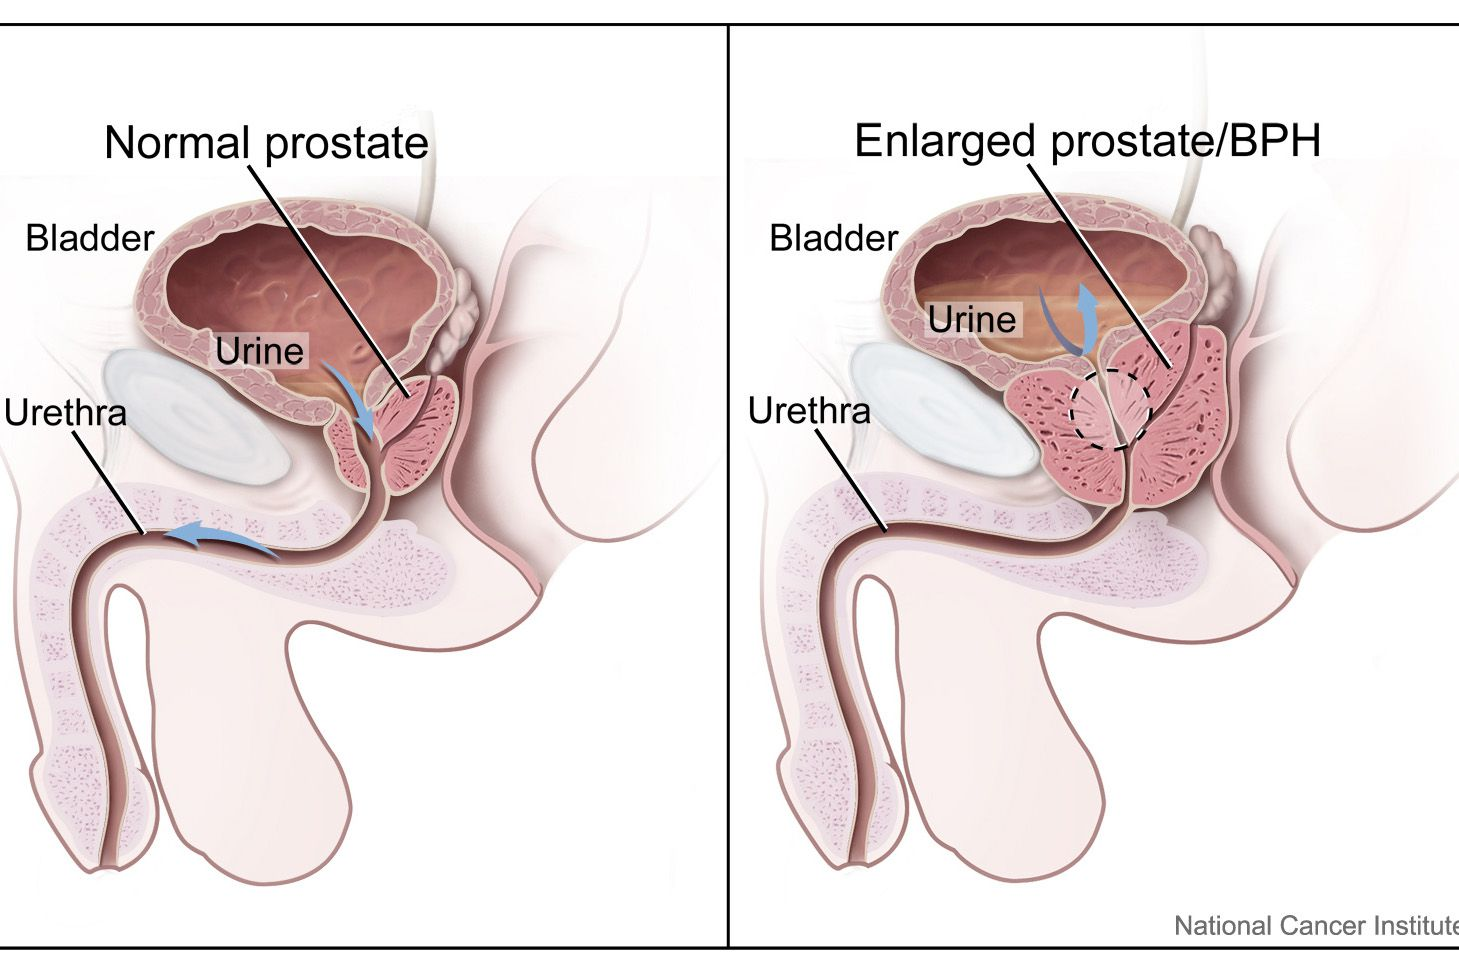 [Health behavior of Hungarian prostate cancer patients]